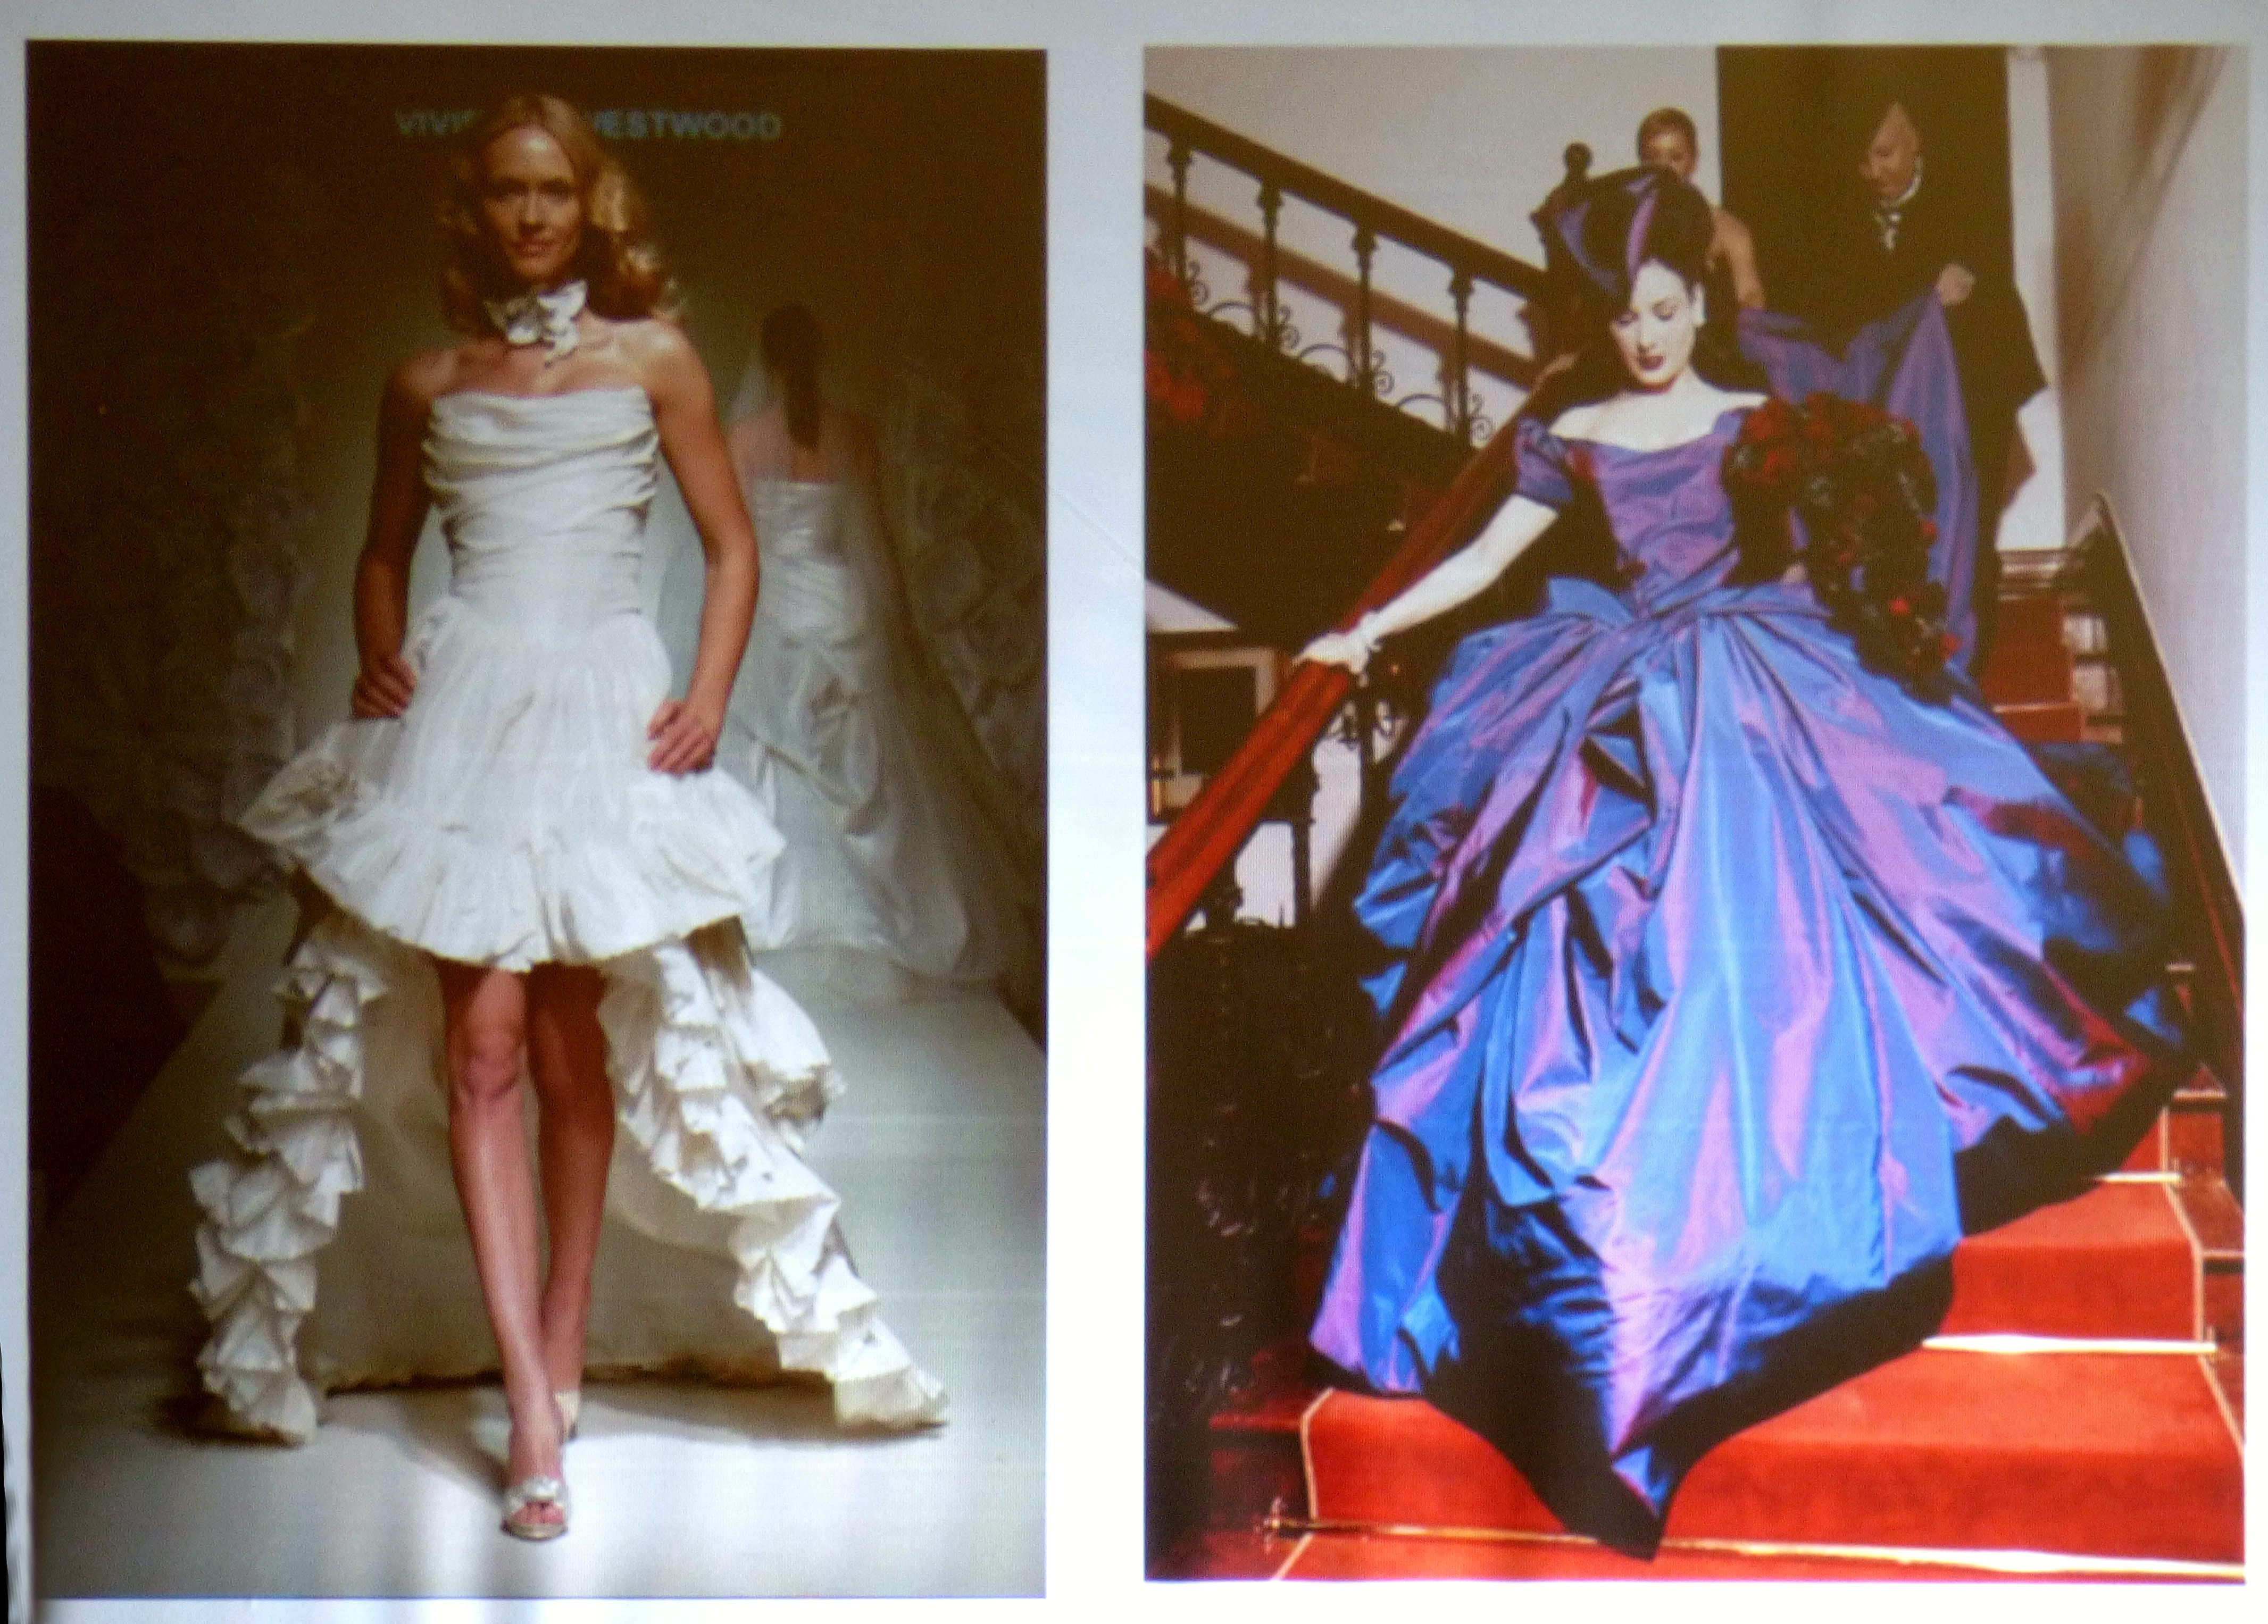 slide showing wedding dresses by Vivienne Westwood - Ready-to-wear and Couture